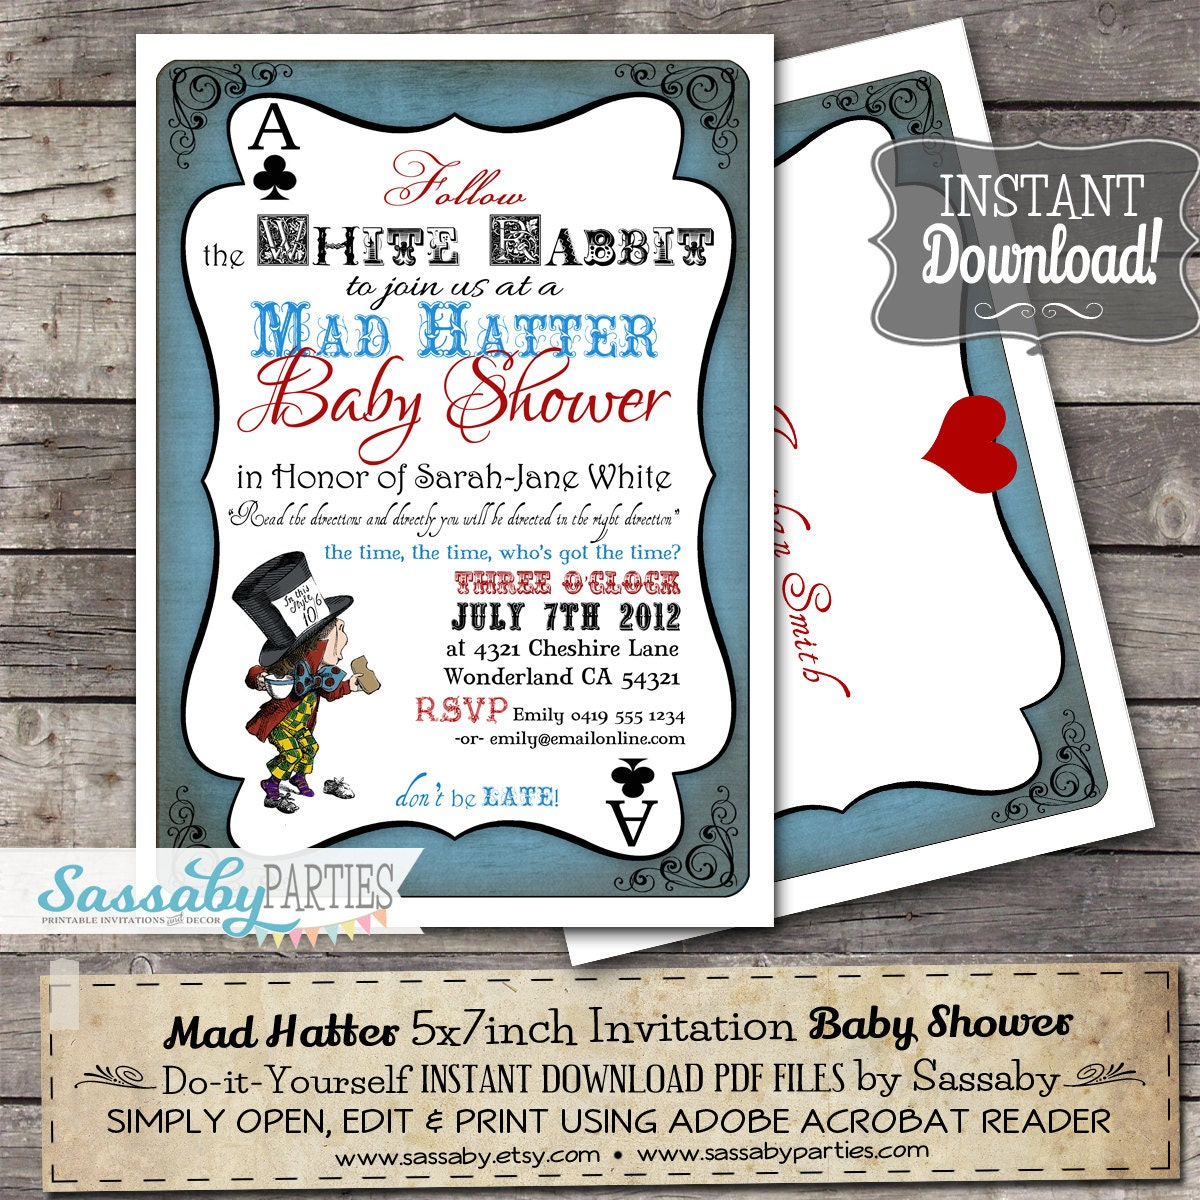 Mad Hatter Baby Shower Invitation INSTANT DOWNLOAD | Etsy